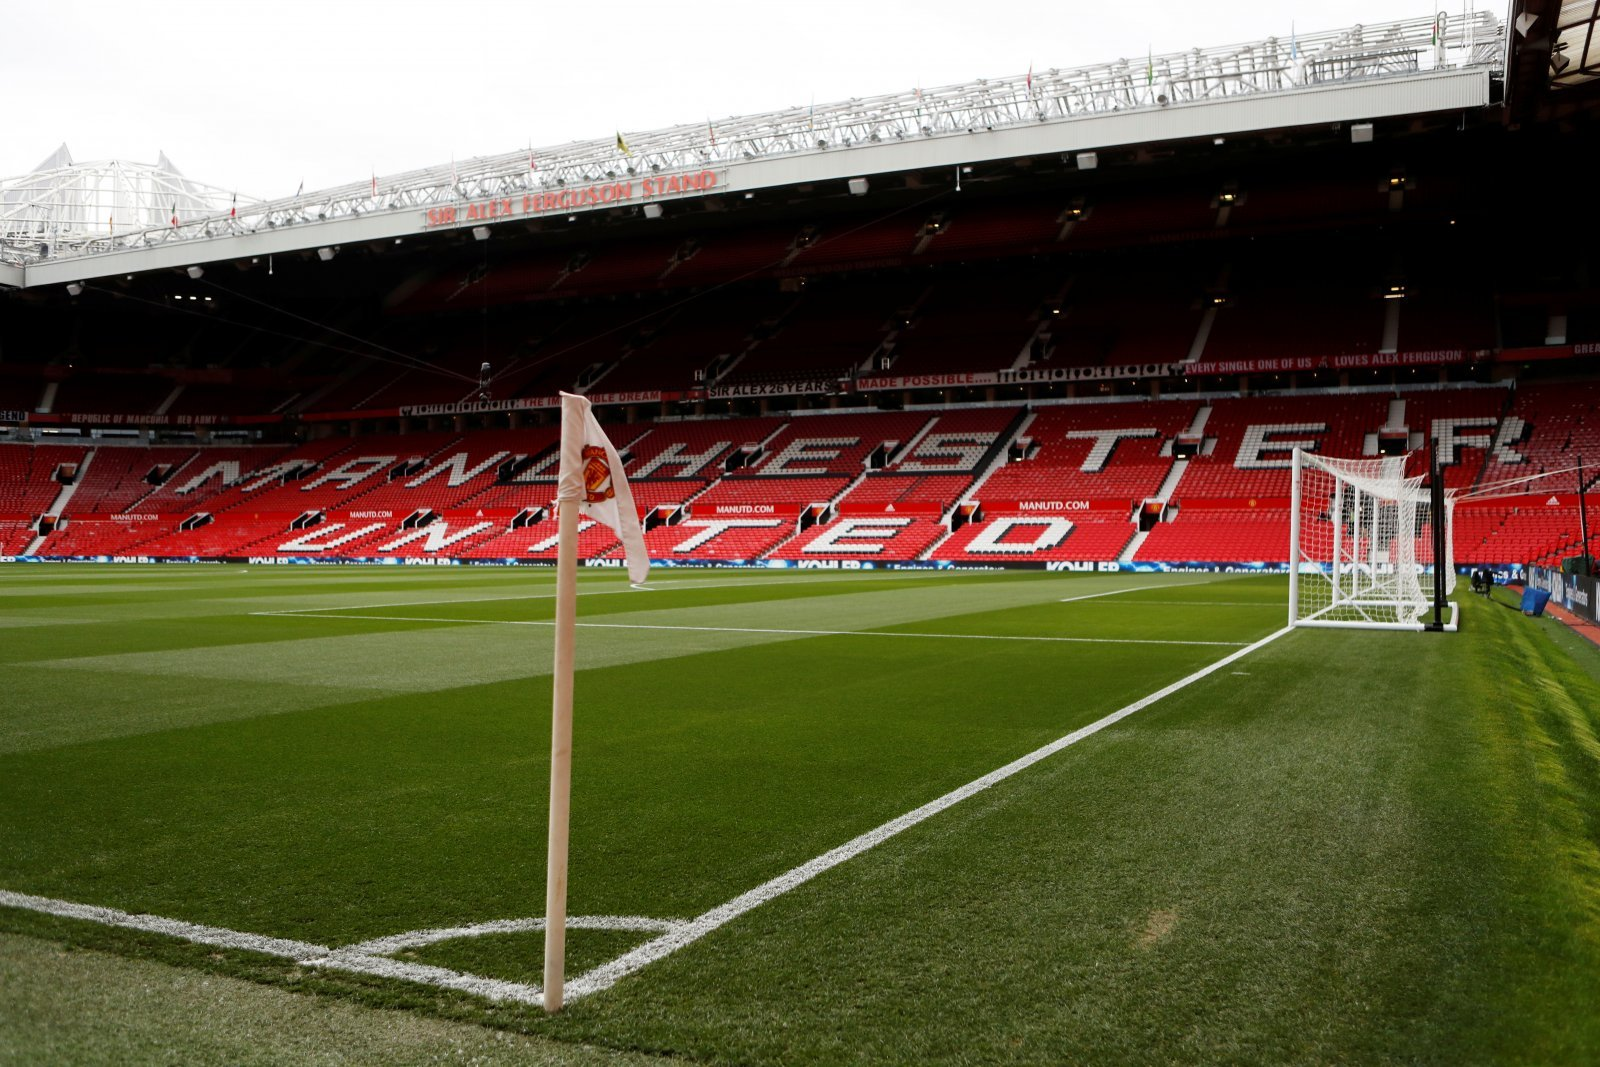 Manchester United: Fans doubt that Old Trafford 'revamp' will take place